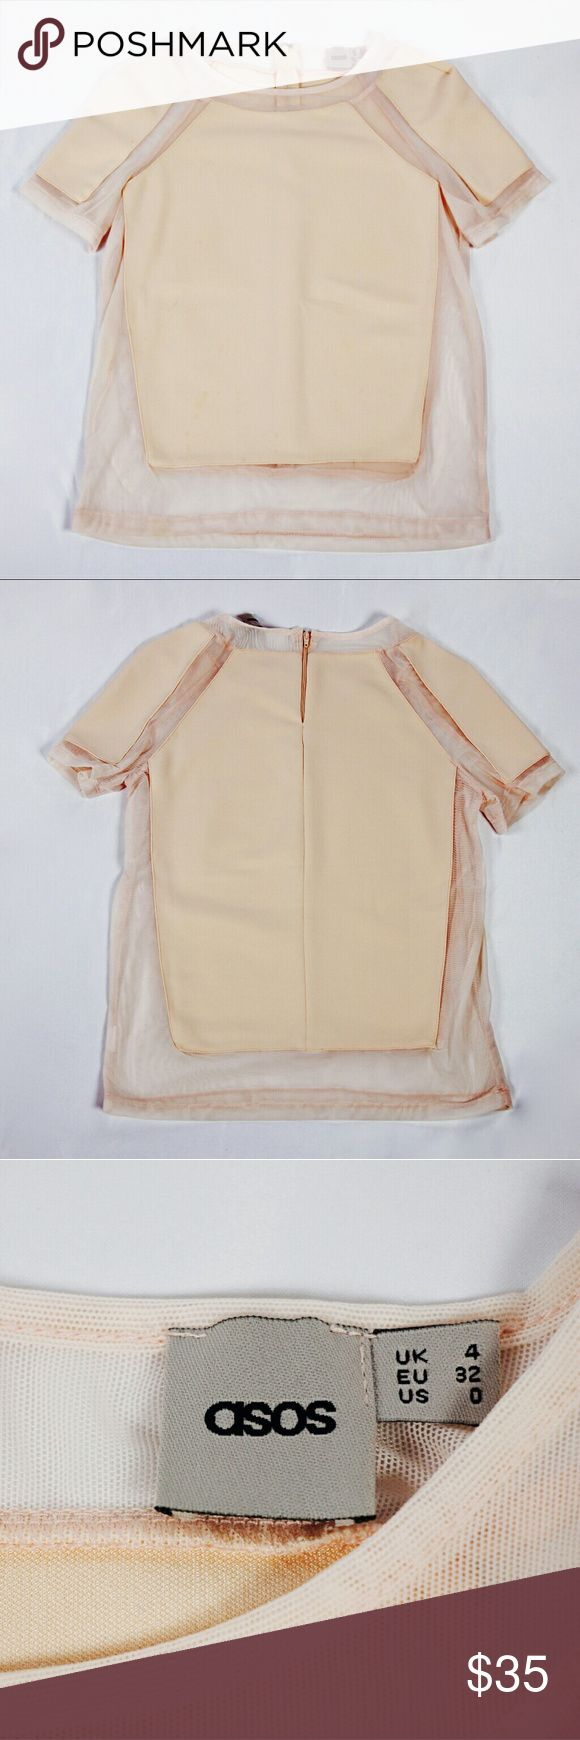 [ASOS] Sheer Panel Top ASOS top in a pretty nude pink color with unique sheer panel details at the neckline, sleeves, sides, and hem. Short sleeve with zipper back closure. Sold out style! Size 0. Pre-loved in overall good condition. ASOS Tops